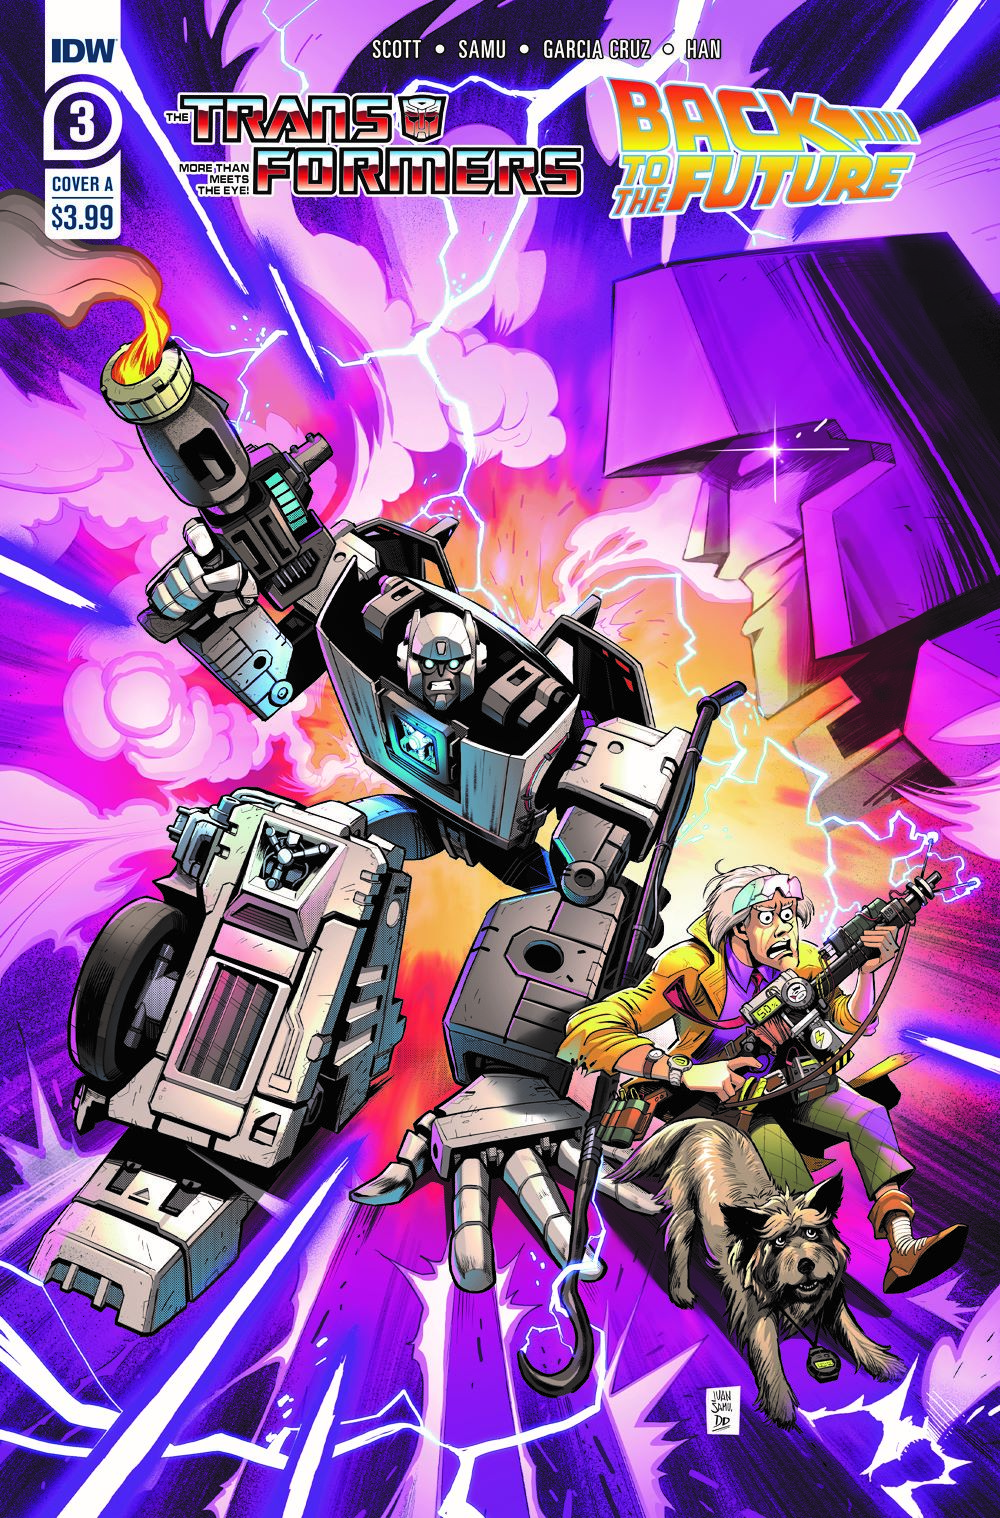 TF-BTTF03-coverA ComicList Previews: TRANSFORMERS BACK TO THE FUTURE #3 (OF 4)